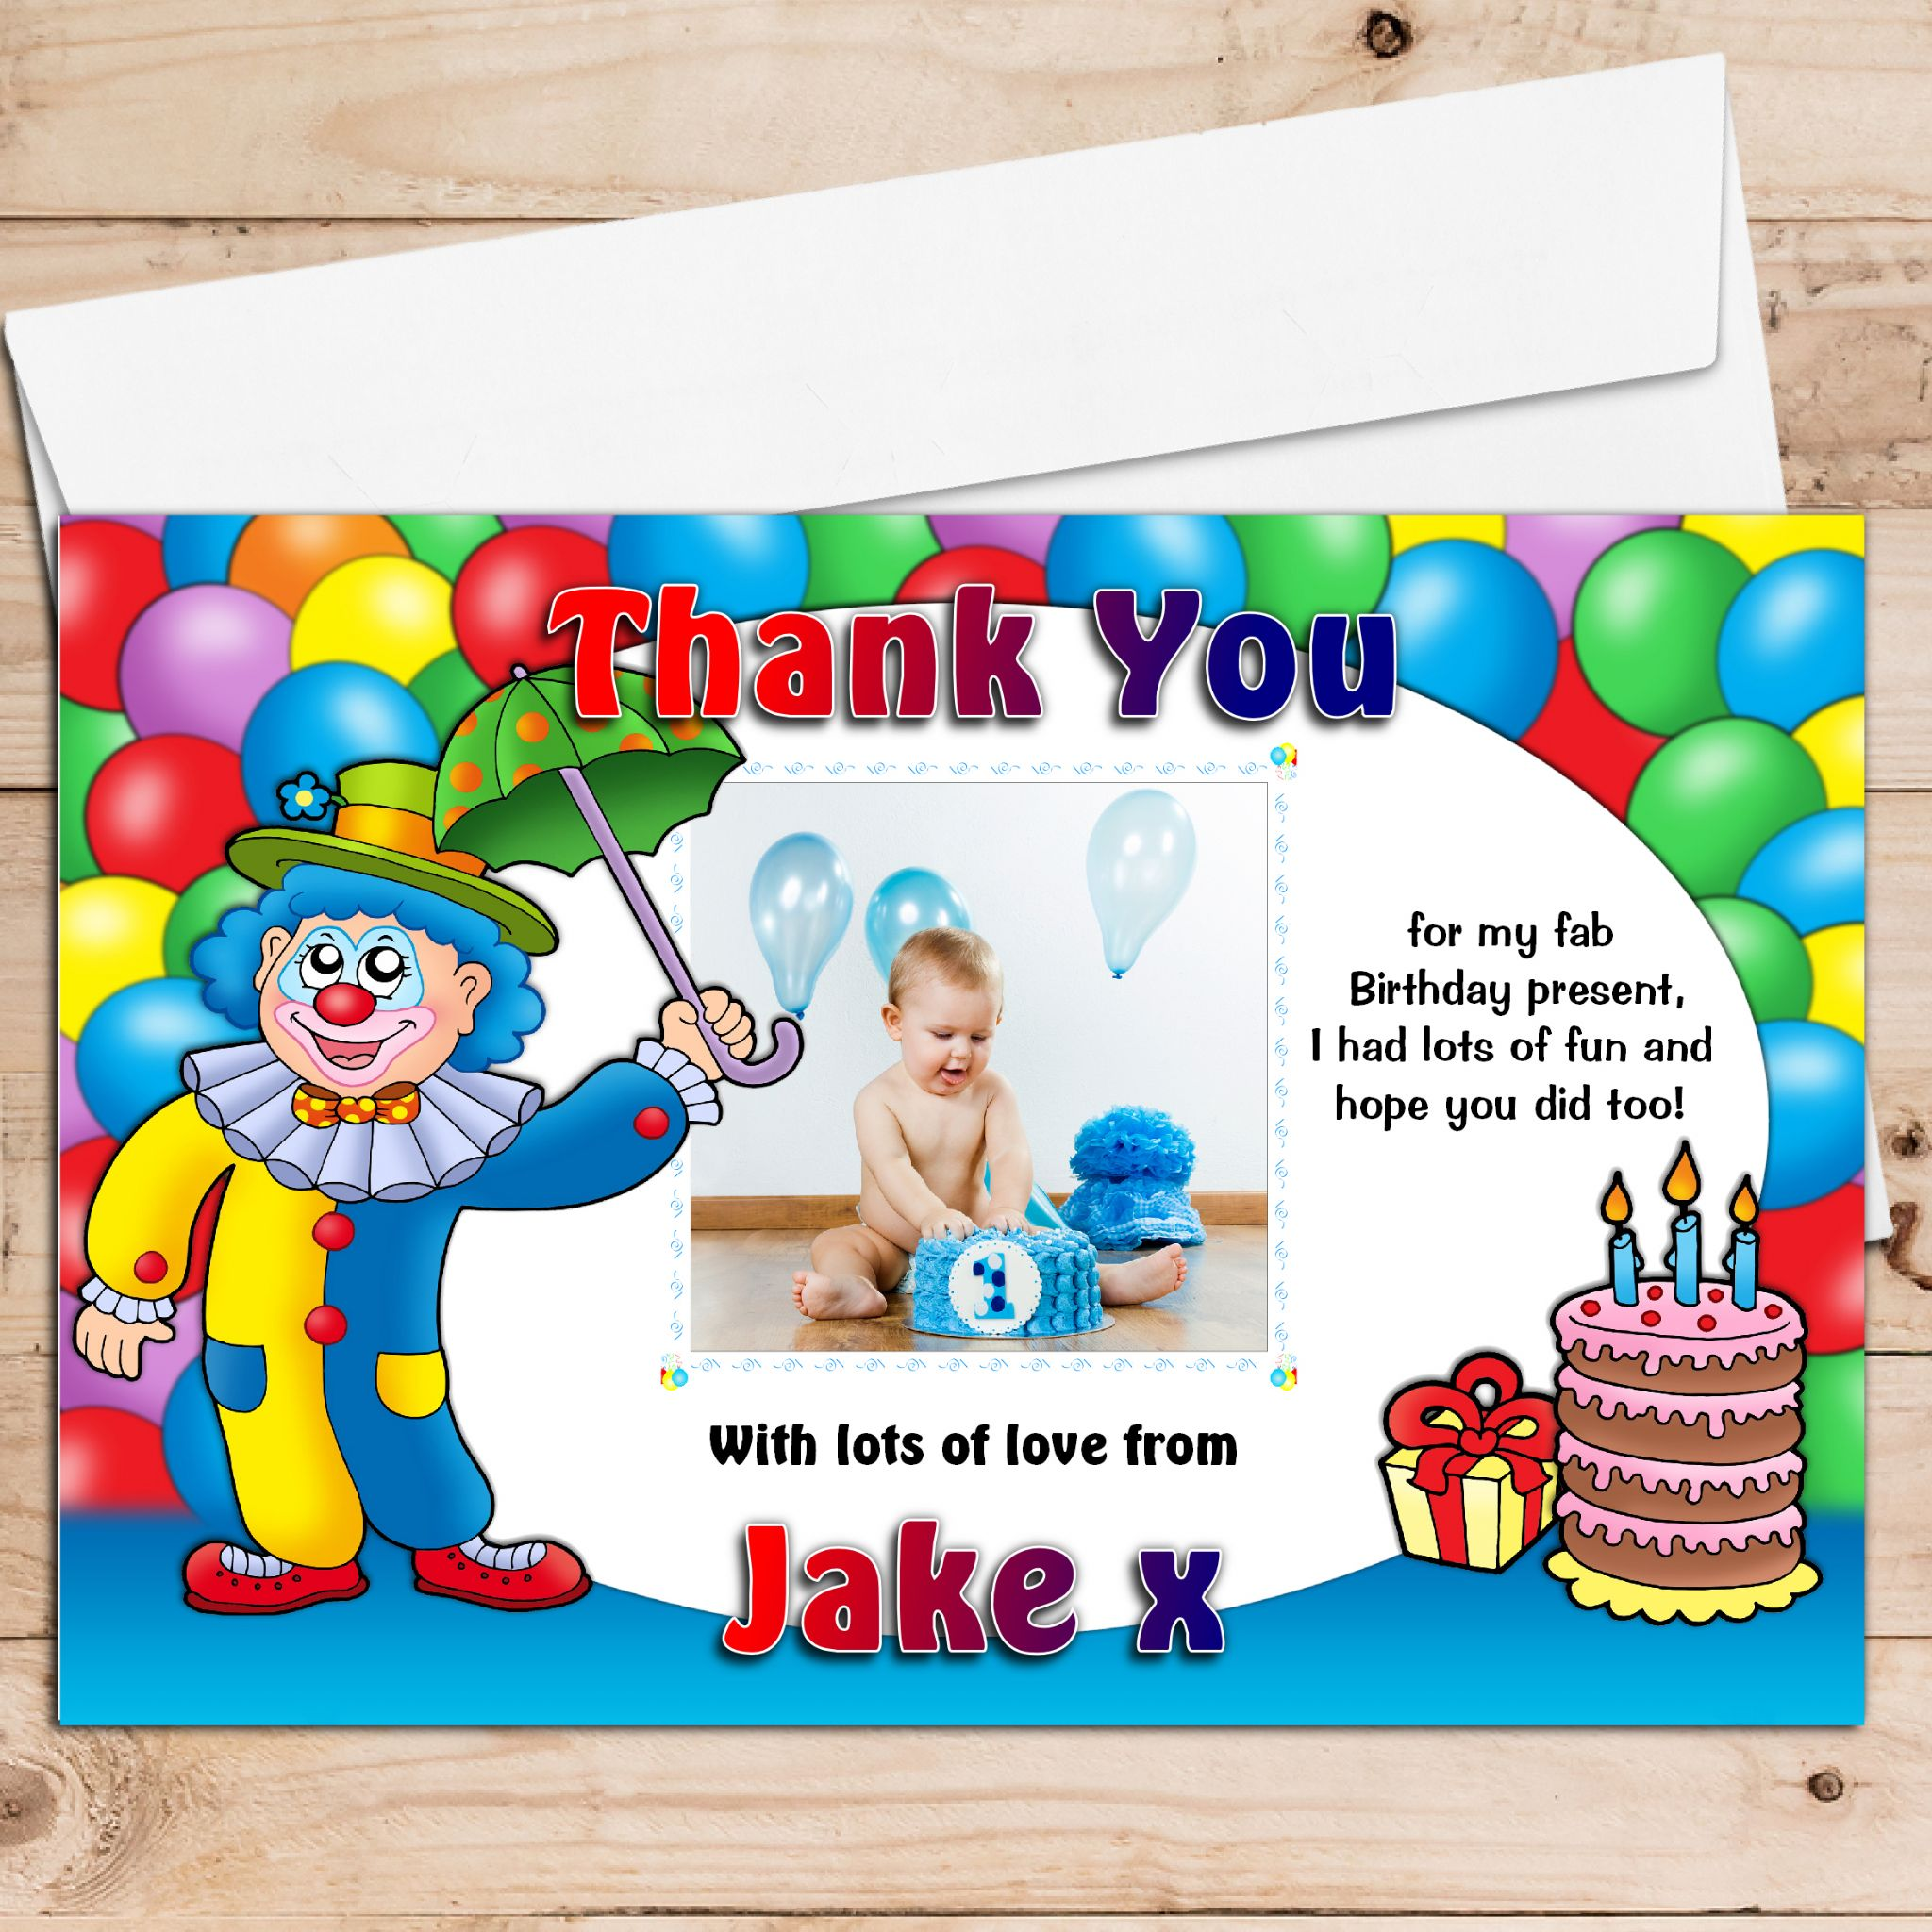 10 personalised boys girls clown balloons birthday party thank 10 personalised boys girls clown balloons birthday party thank you photo cards n3 monicamarmolfo Images